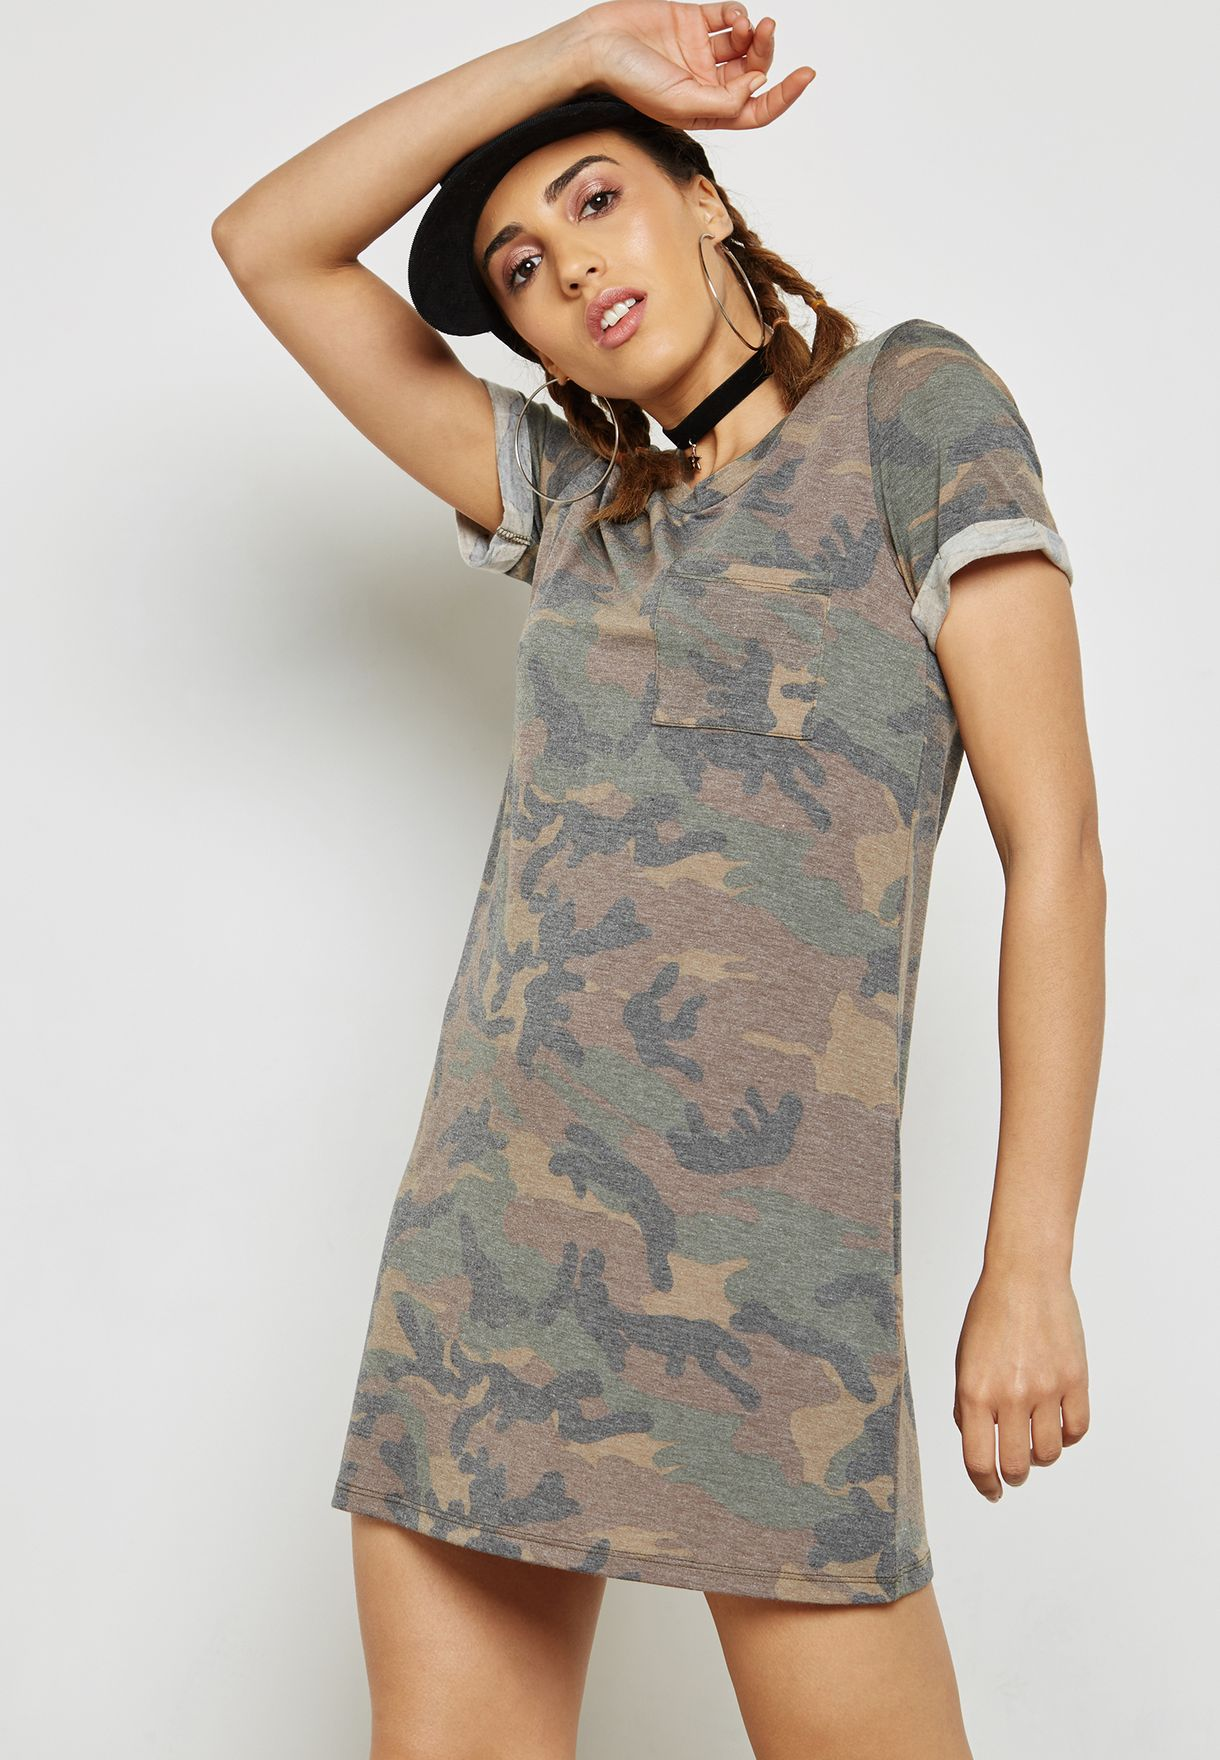 58c9caf4189c Shop Forever 21 prints Camo T-Shirt Dress 149132 for Women in UAE ...